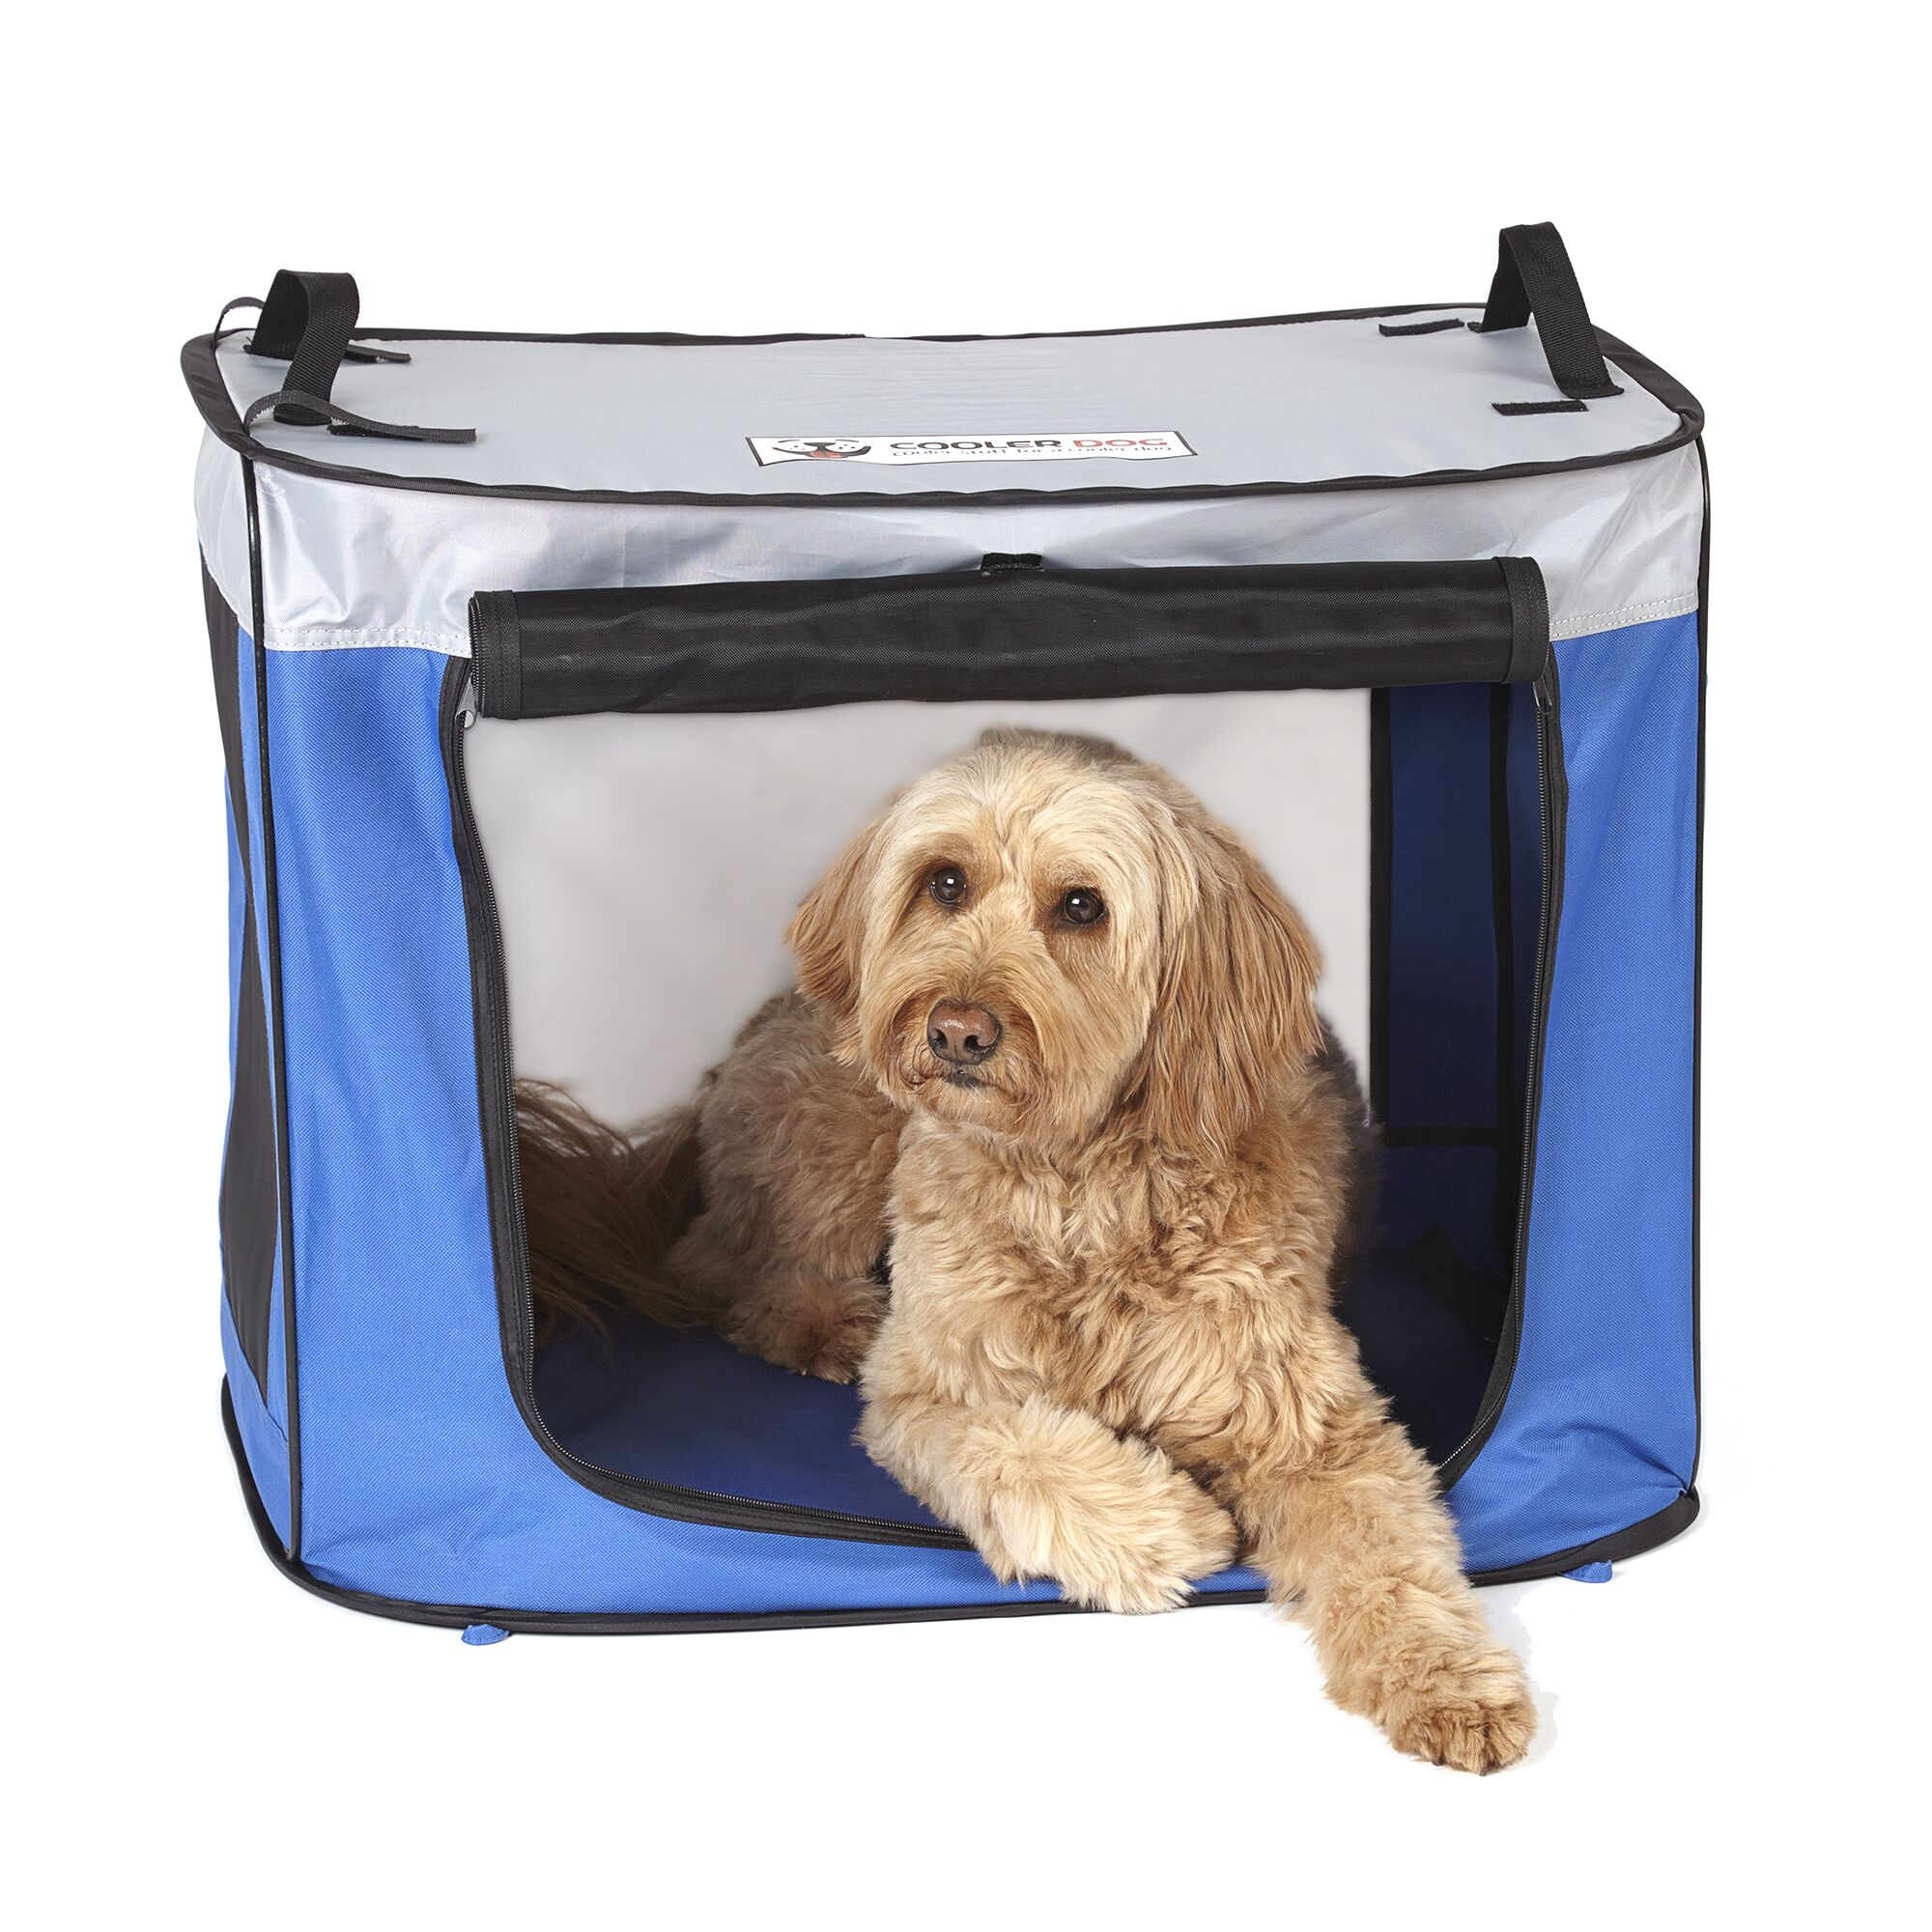 Pup-up Shade Oasis Pet Carrier Size: 27.5